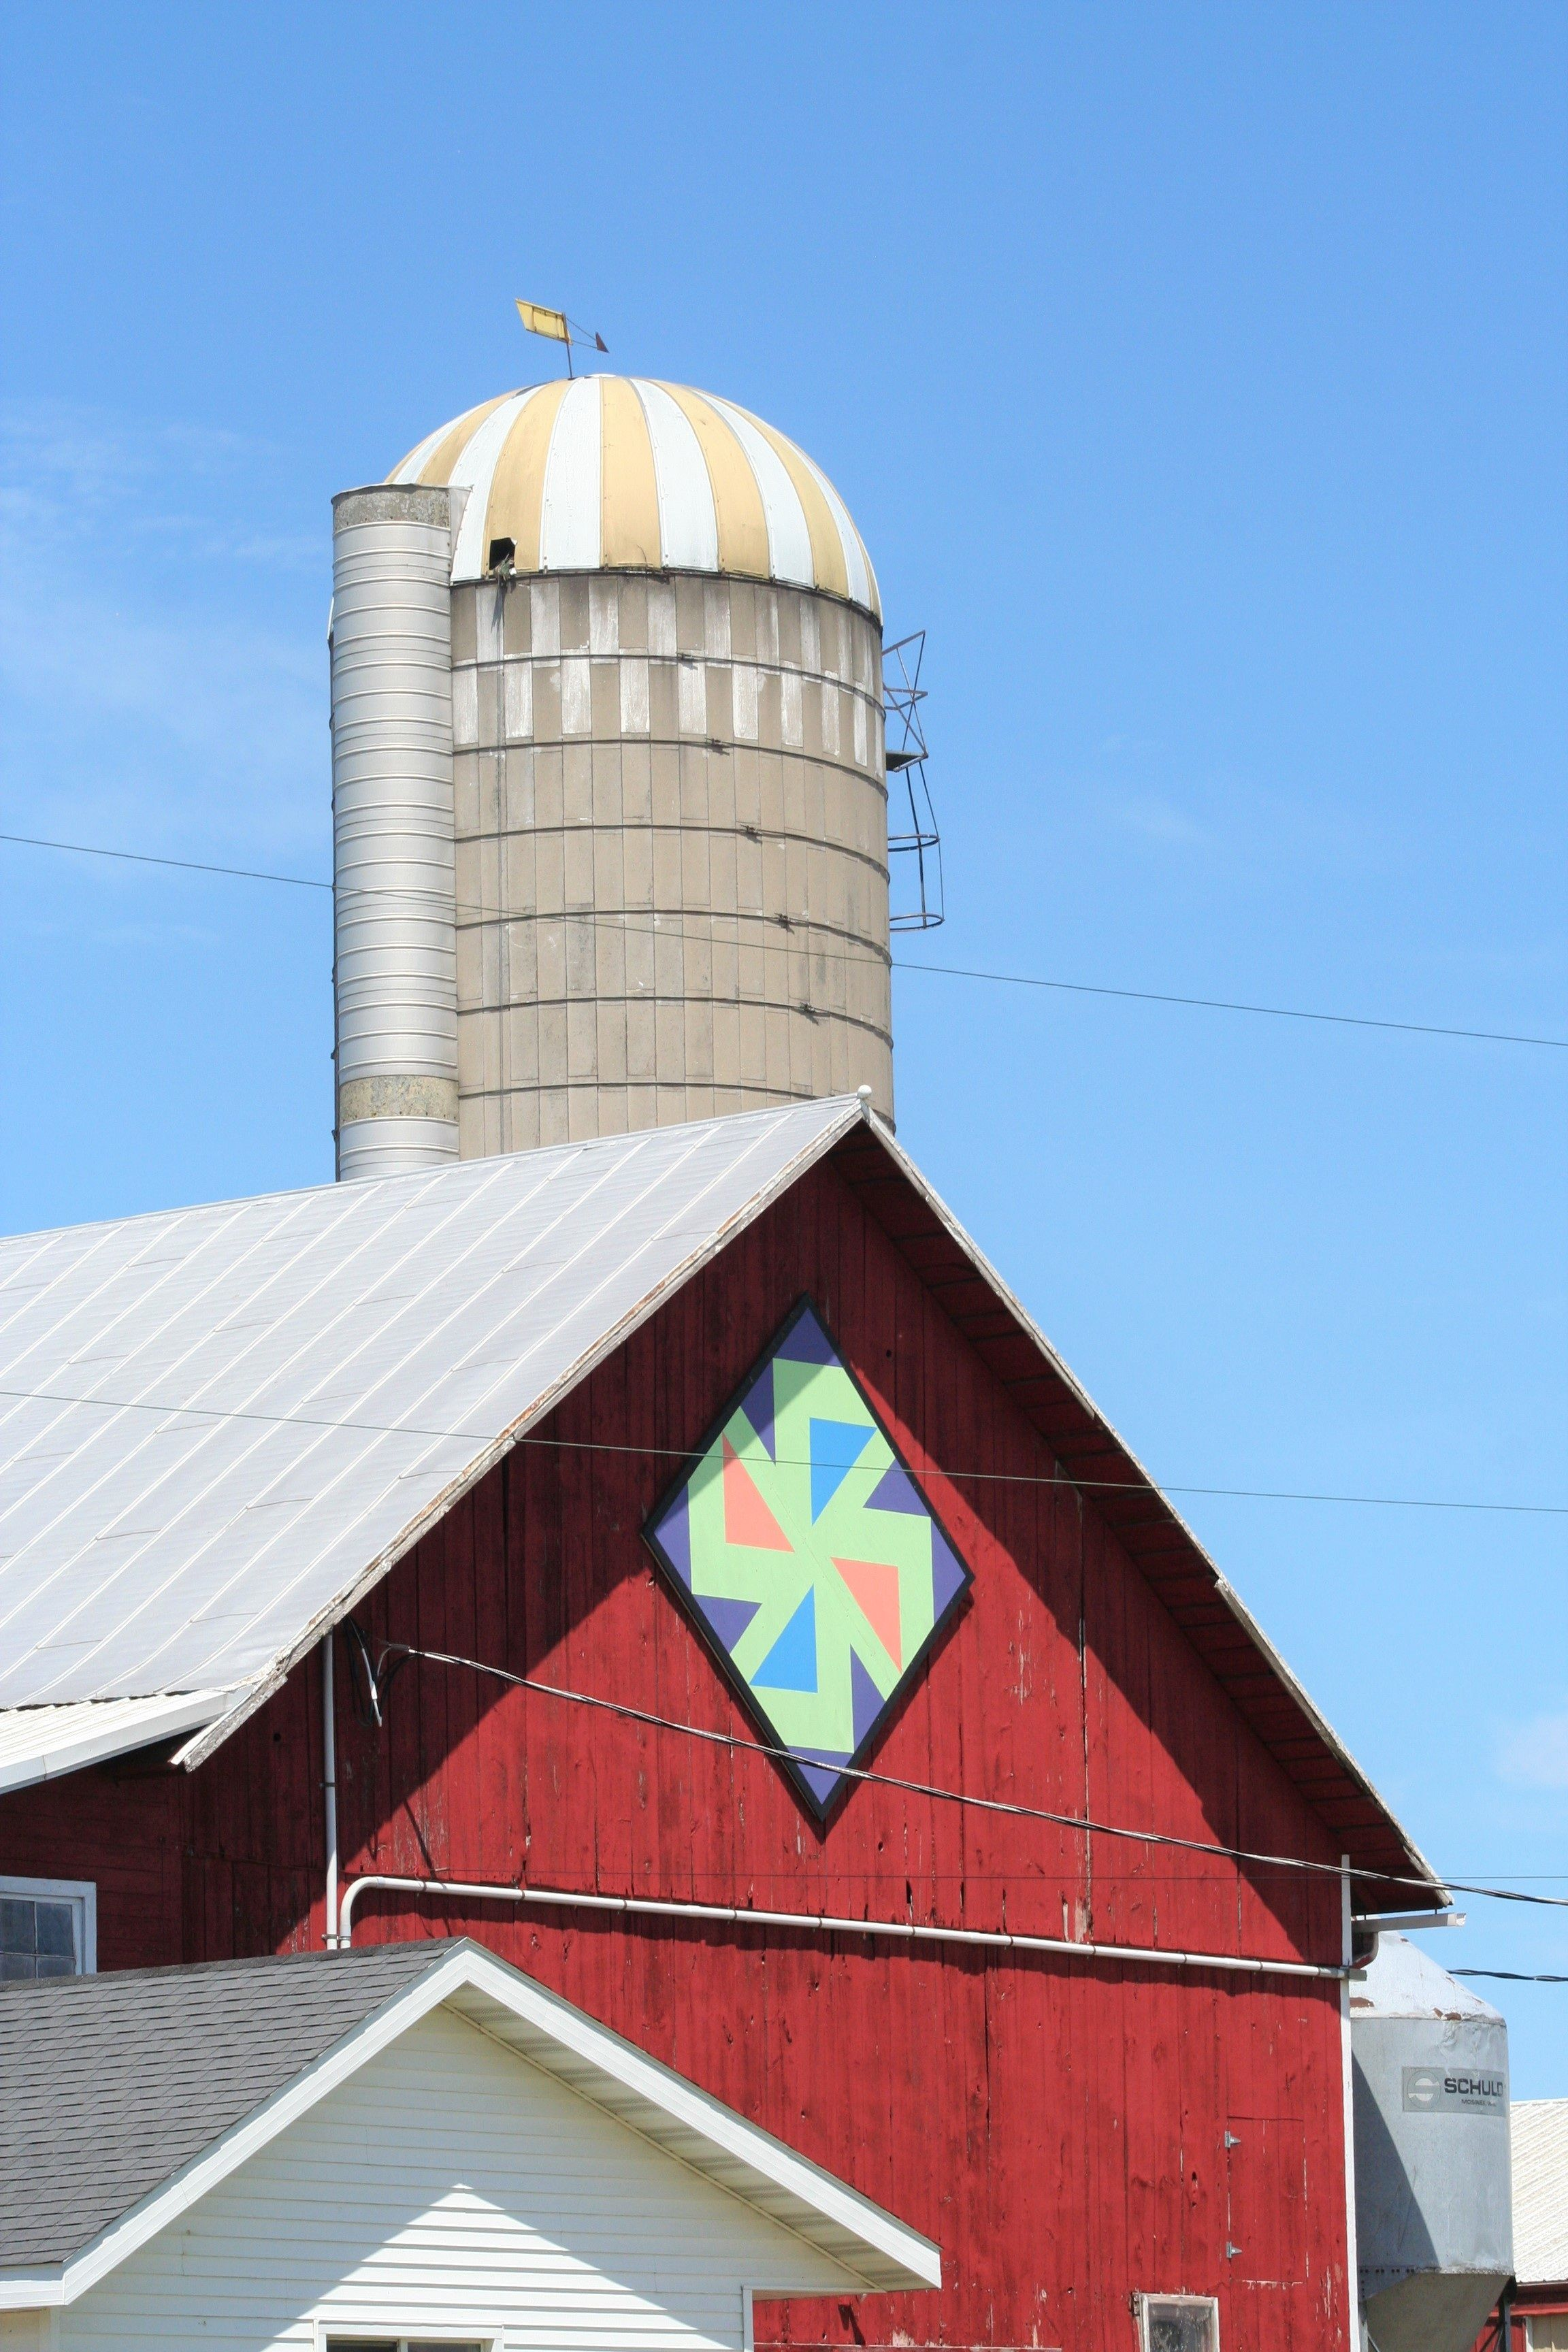 Farmer S Puzzle Barn Quilt On The Door County Wisconsin Quilt Trail Door County Wisconsin Barn Quilt House Styles